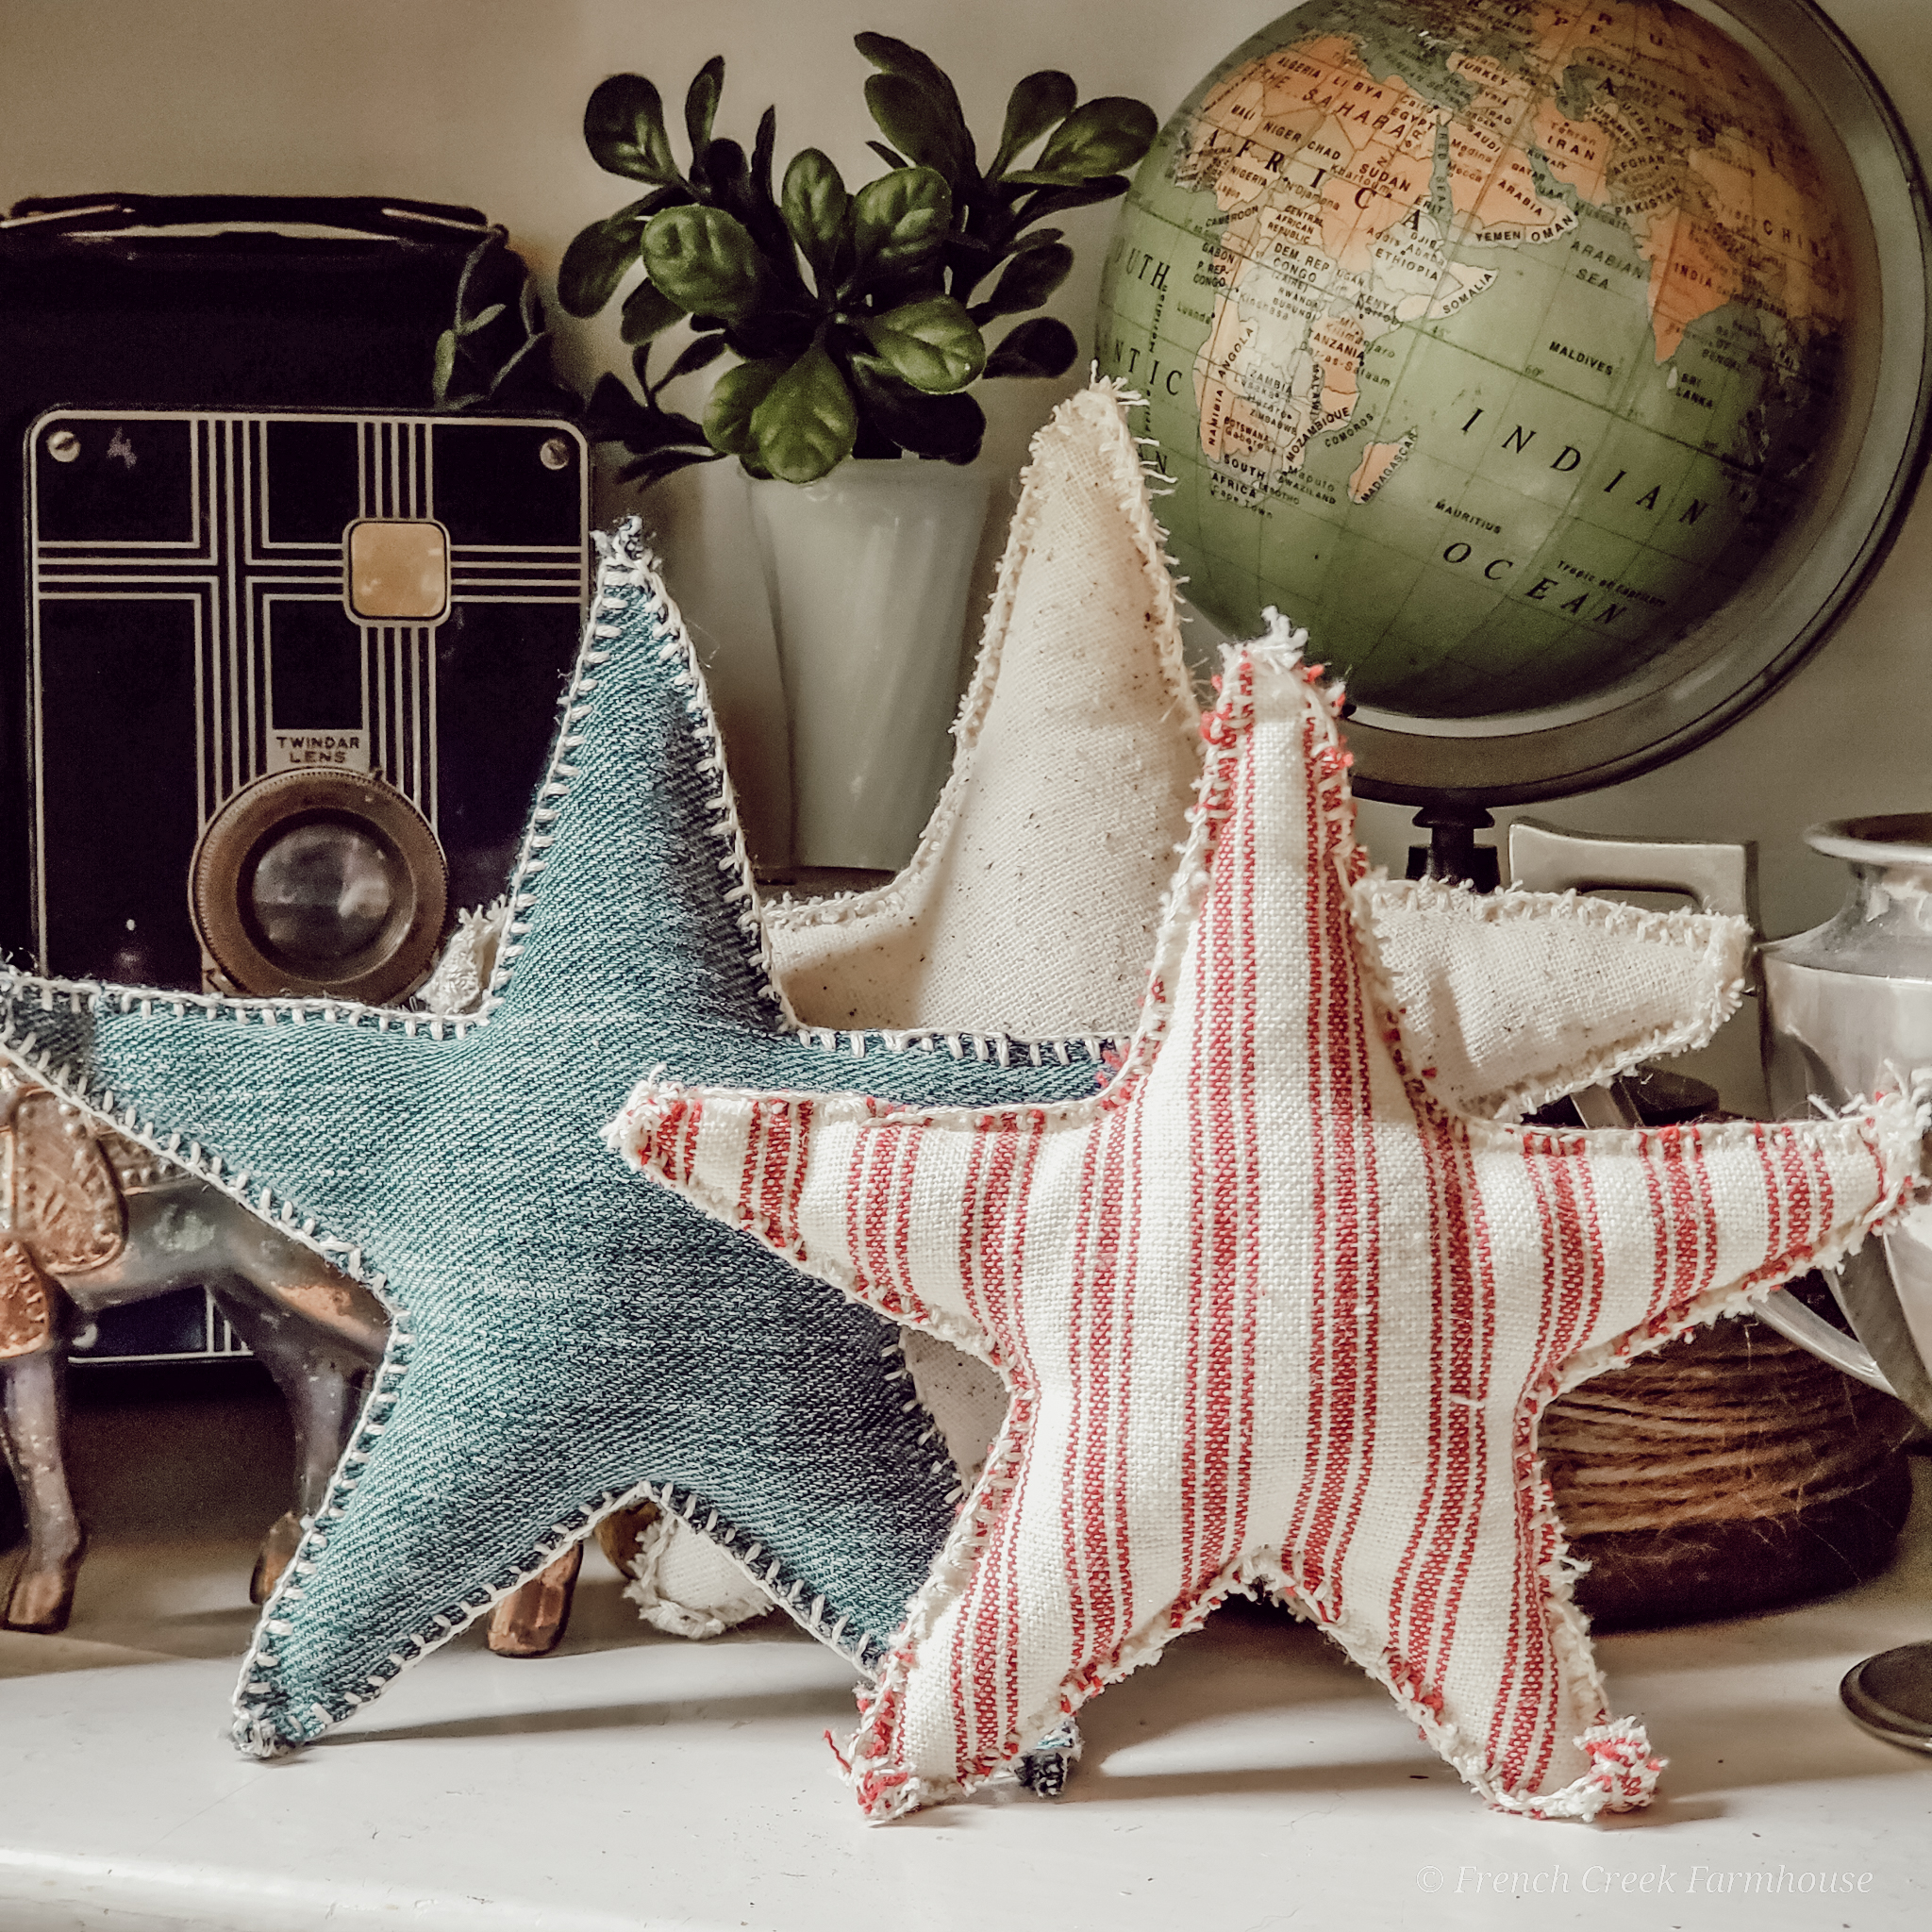 Use this tutorial and free pattern to make an easy craft